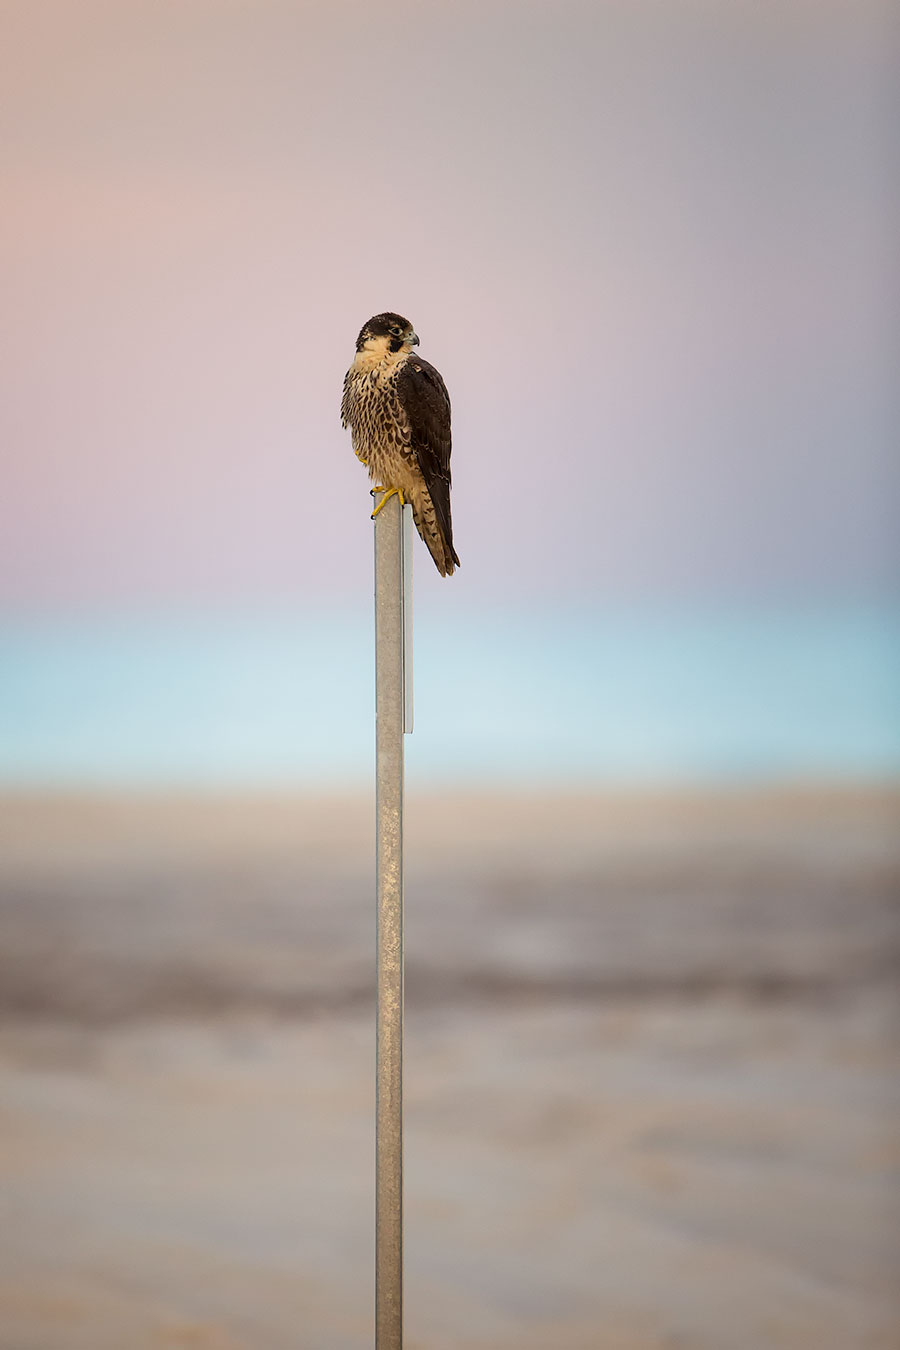 The results of the recent year end pole showed a surprisingly low number of votes, 18%, for Josephine Durt the Peregrine Falcon for Pole Master. I found that a bit odd considering how the Peregrine Falcon, the world's fastest animal and also the world's largest attitude clearly rule the beaches around here. I ran down to the pole tonight to check it out and see what was what.